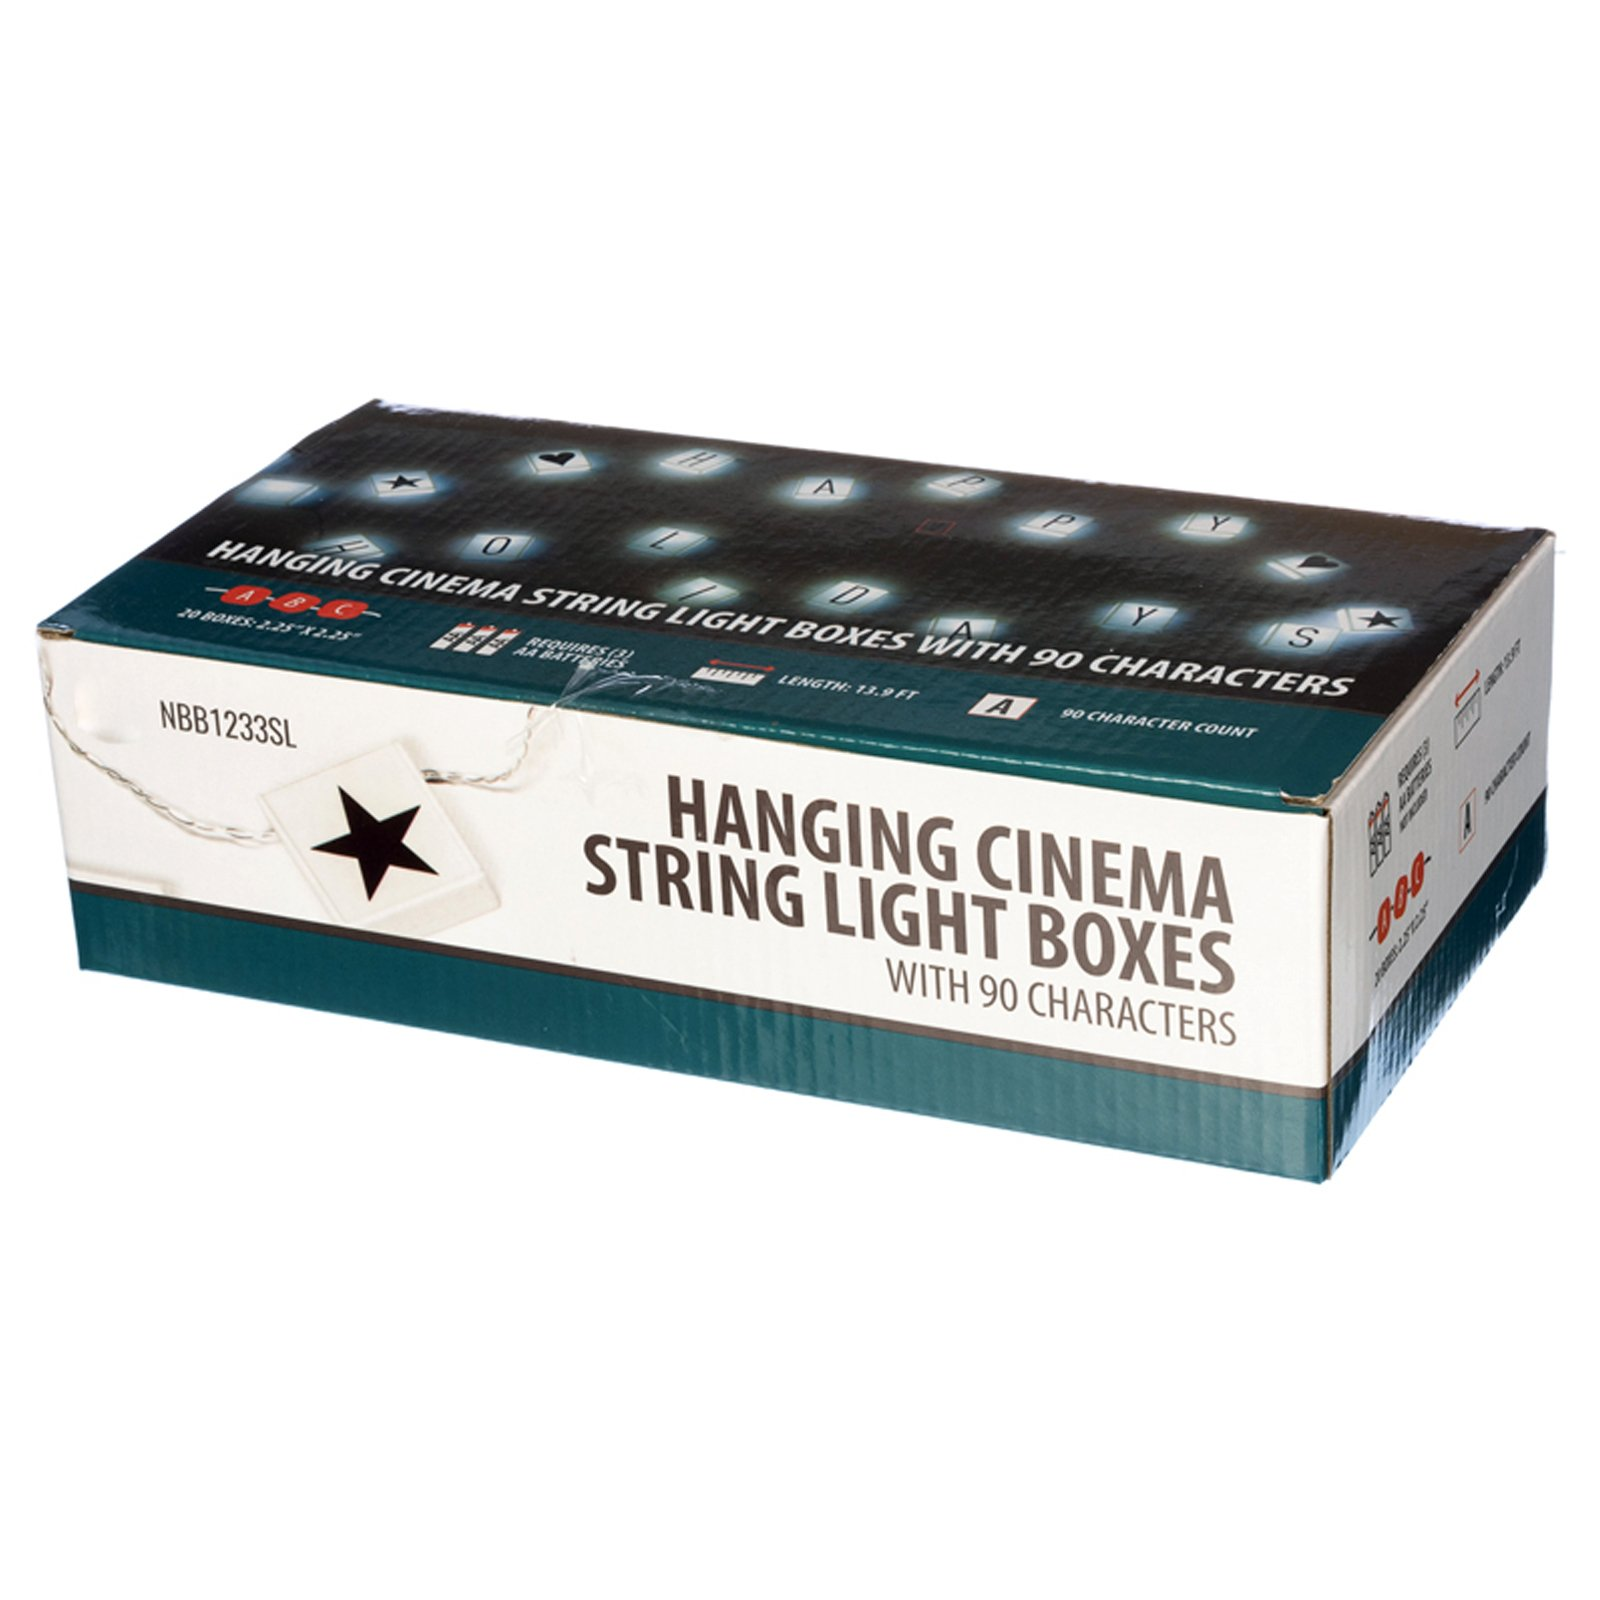 Universal Hanging Cinema String Light Boxes With 90 Characters - 20 Light Boxes